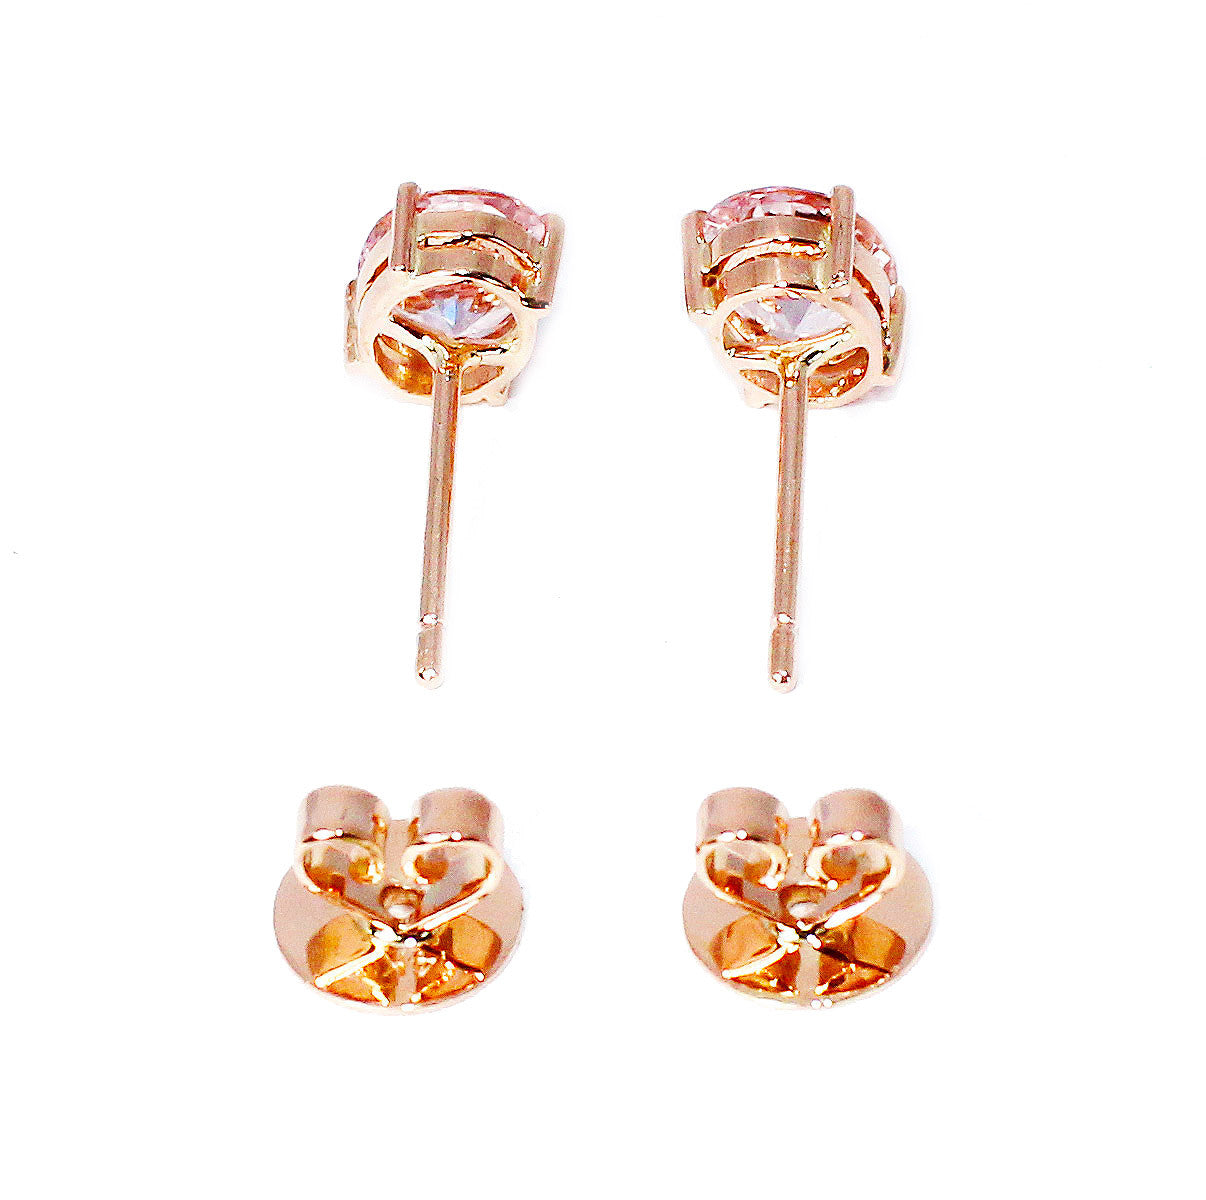 Morganite oval brilliant cut 2.73 carats pair rose gold post earrings - CLICK HERE - Sarah Hughes - 7